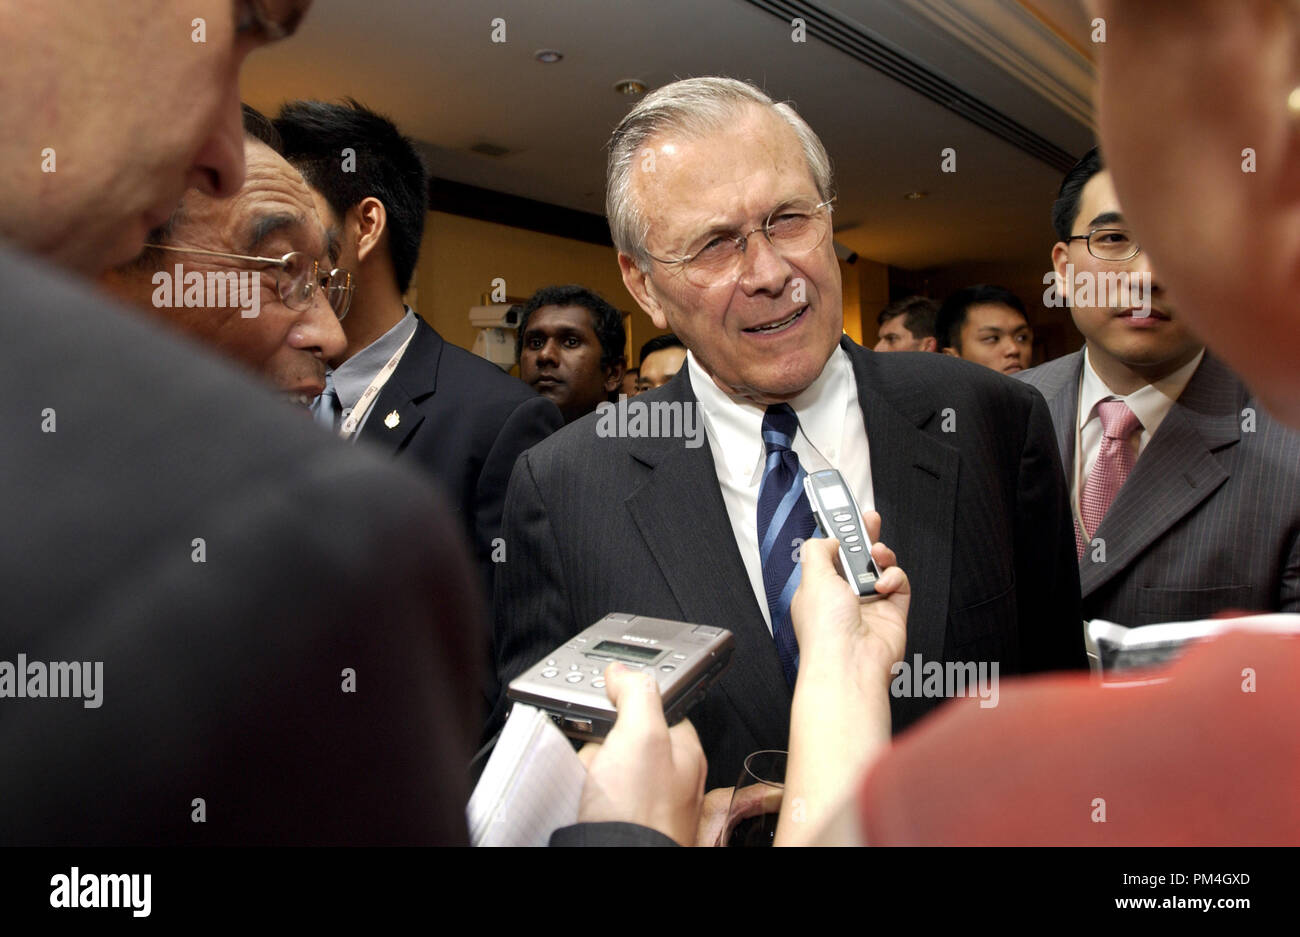 Secretary of Defense Donald H. Rumsfeld speaks with members of the press at the opening reception of the 4th International Institute for Strategic Studies Asia Security Conference: The Shangri-La Dialogue in Singapore on June 3, 2005.  The Asia Security Conference brings ministers of defense and other senior officials of Pacific nations together to discuss such topics as terrorism, piracy and defense capabilities in the region.  DoD photo by Tech. Sgt. Cherie A. Thurlby, U.S. Air Force.  (Released)  File Reference # 1003_133THA - Stock Image